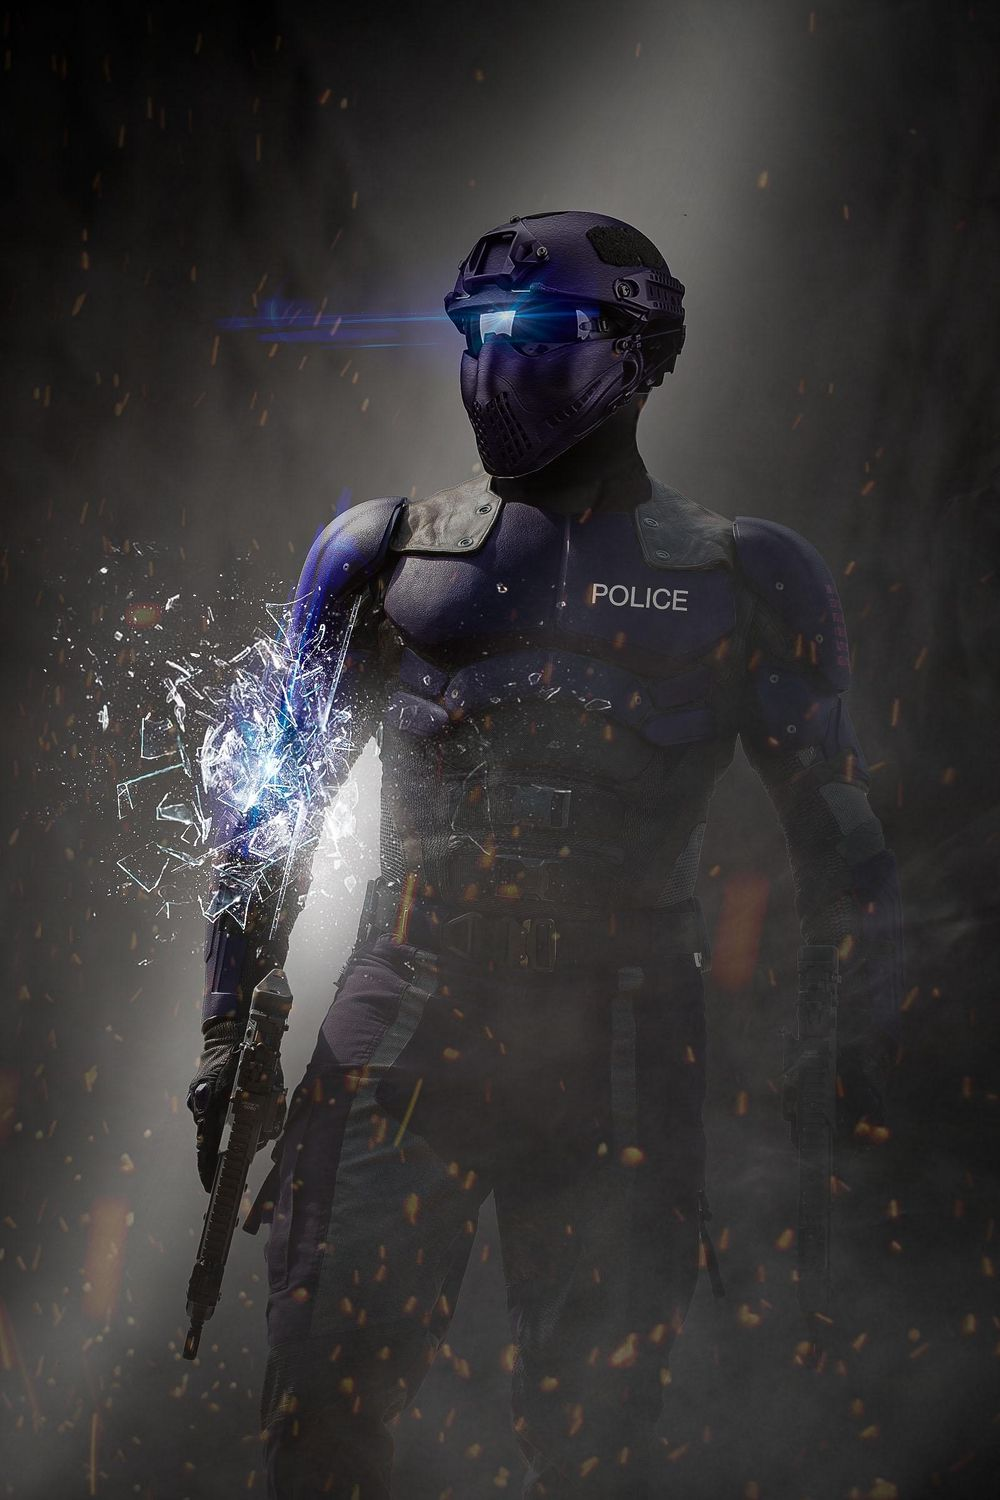 Sci-Fi Movie Poster - image 2 - student project